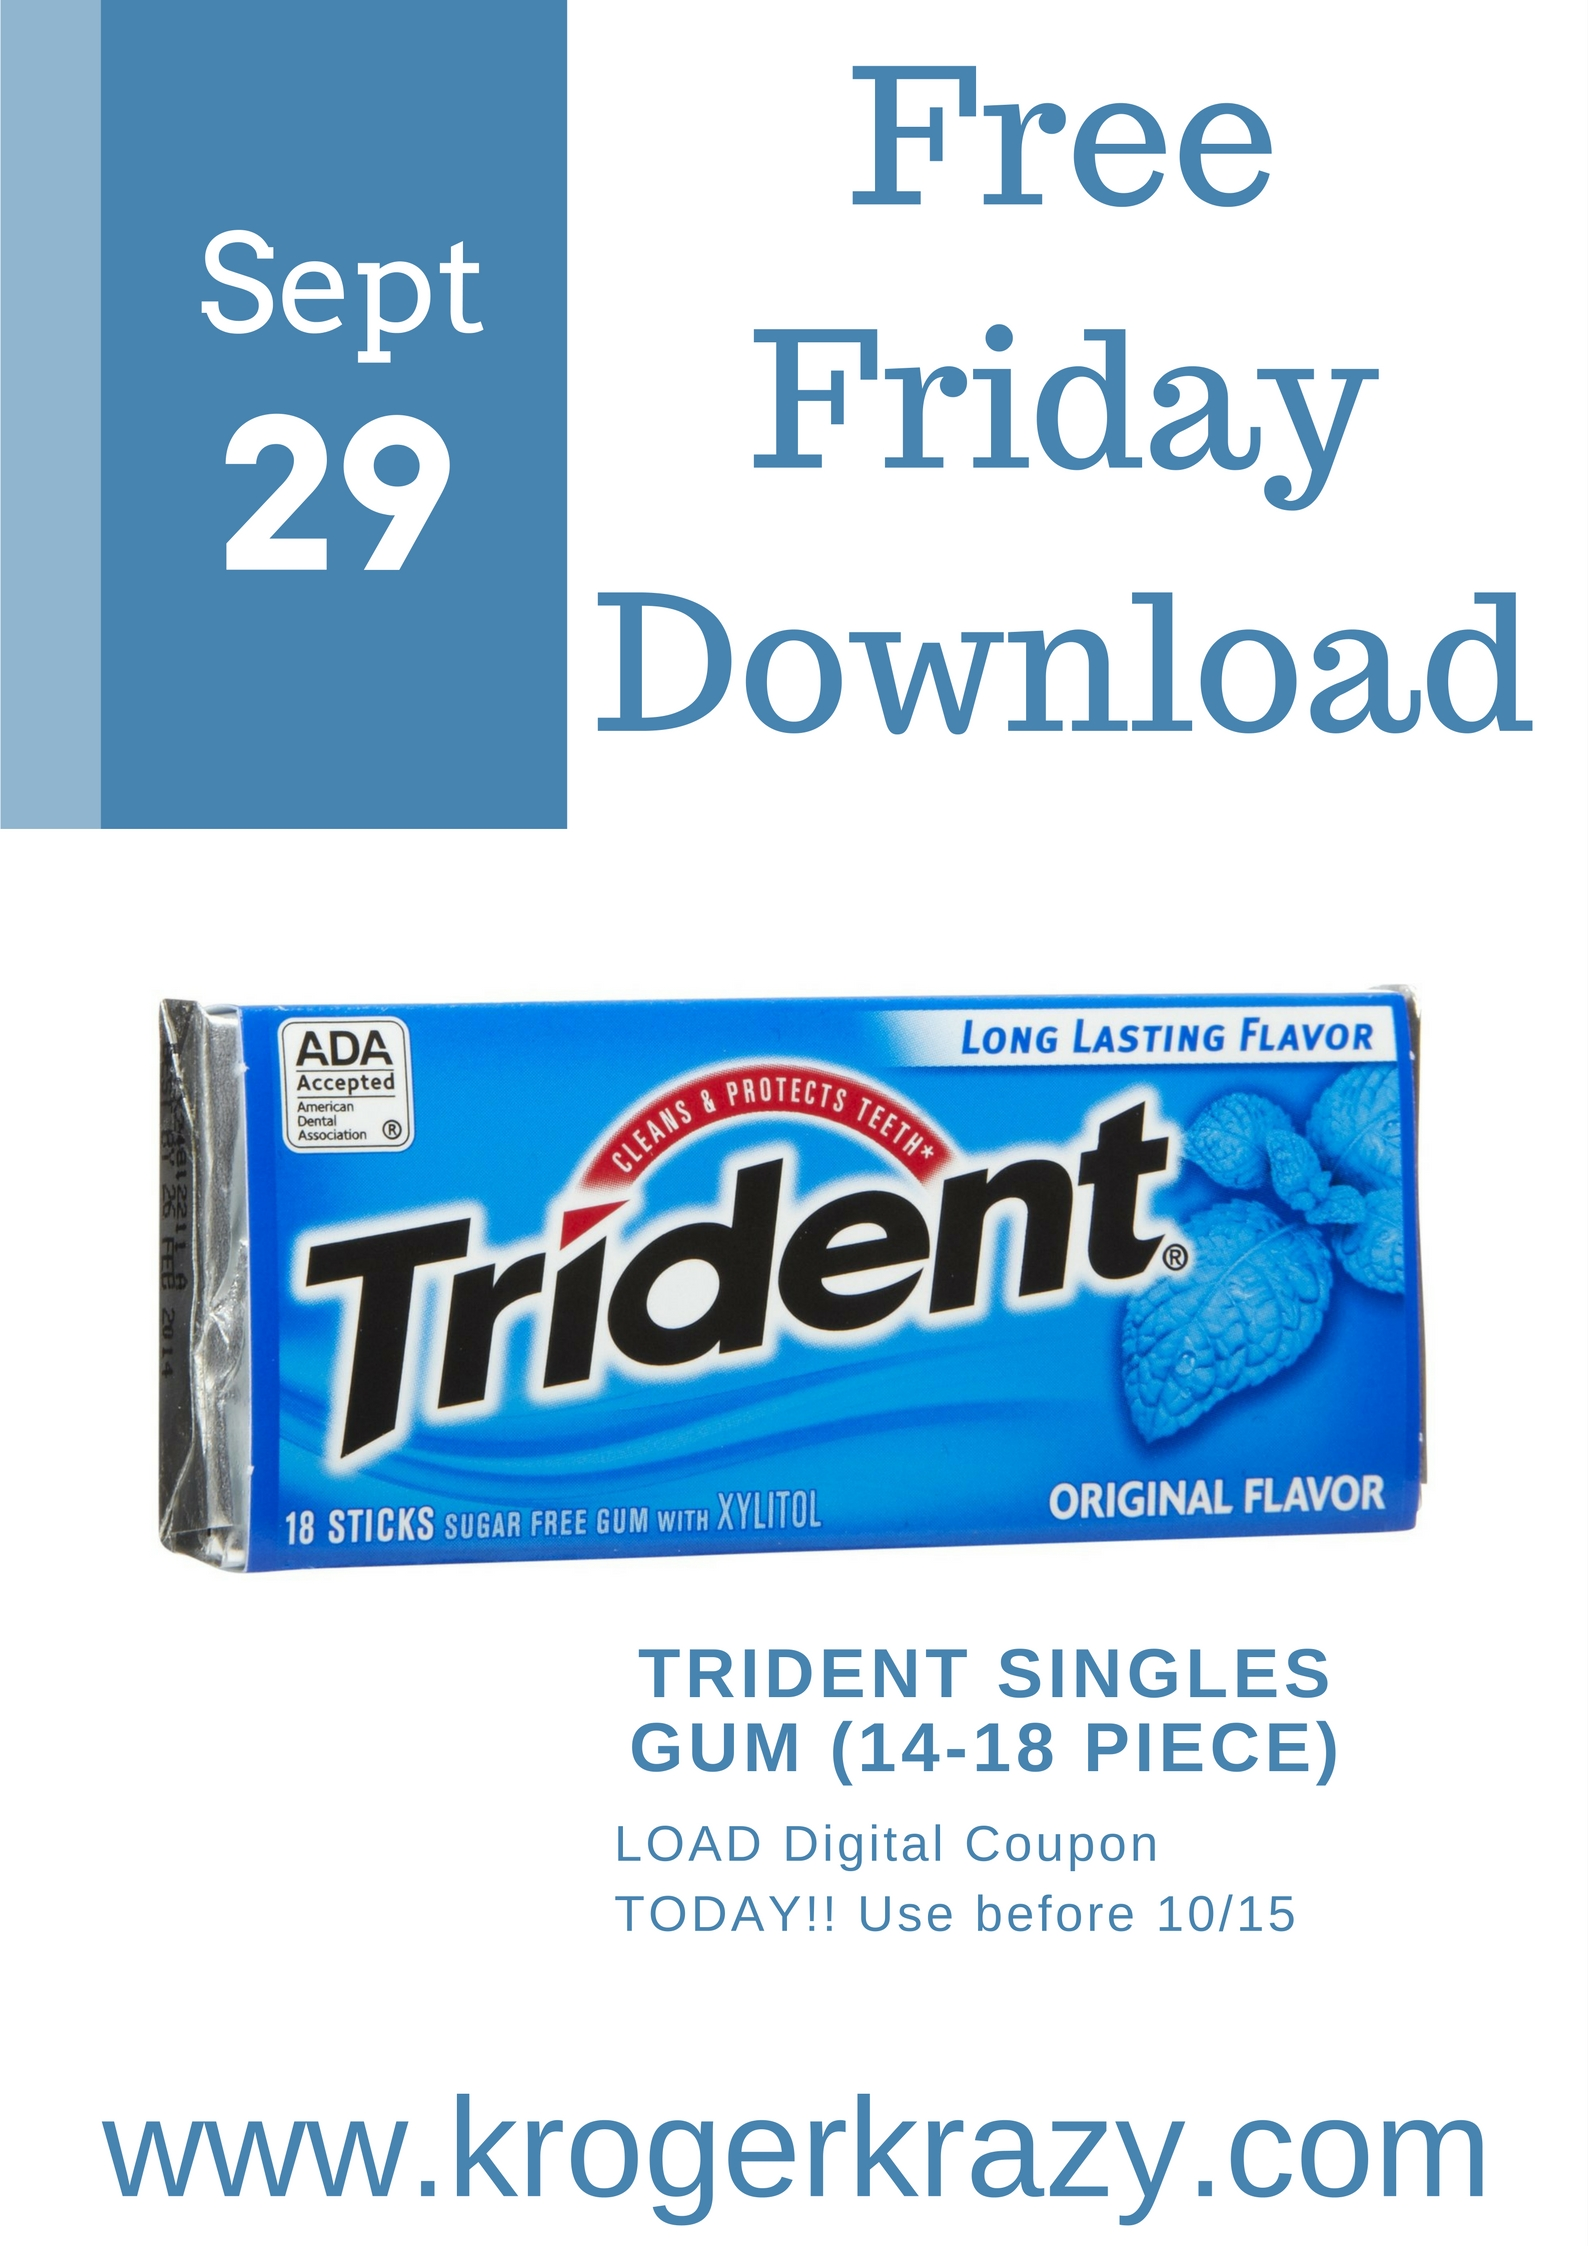 image regarding Trident Coupons Printable identify Cost-free Friday Obtain Trident Singles Gum Kroger Krazy